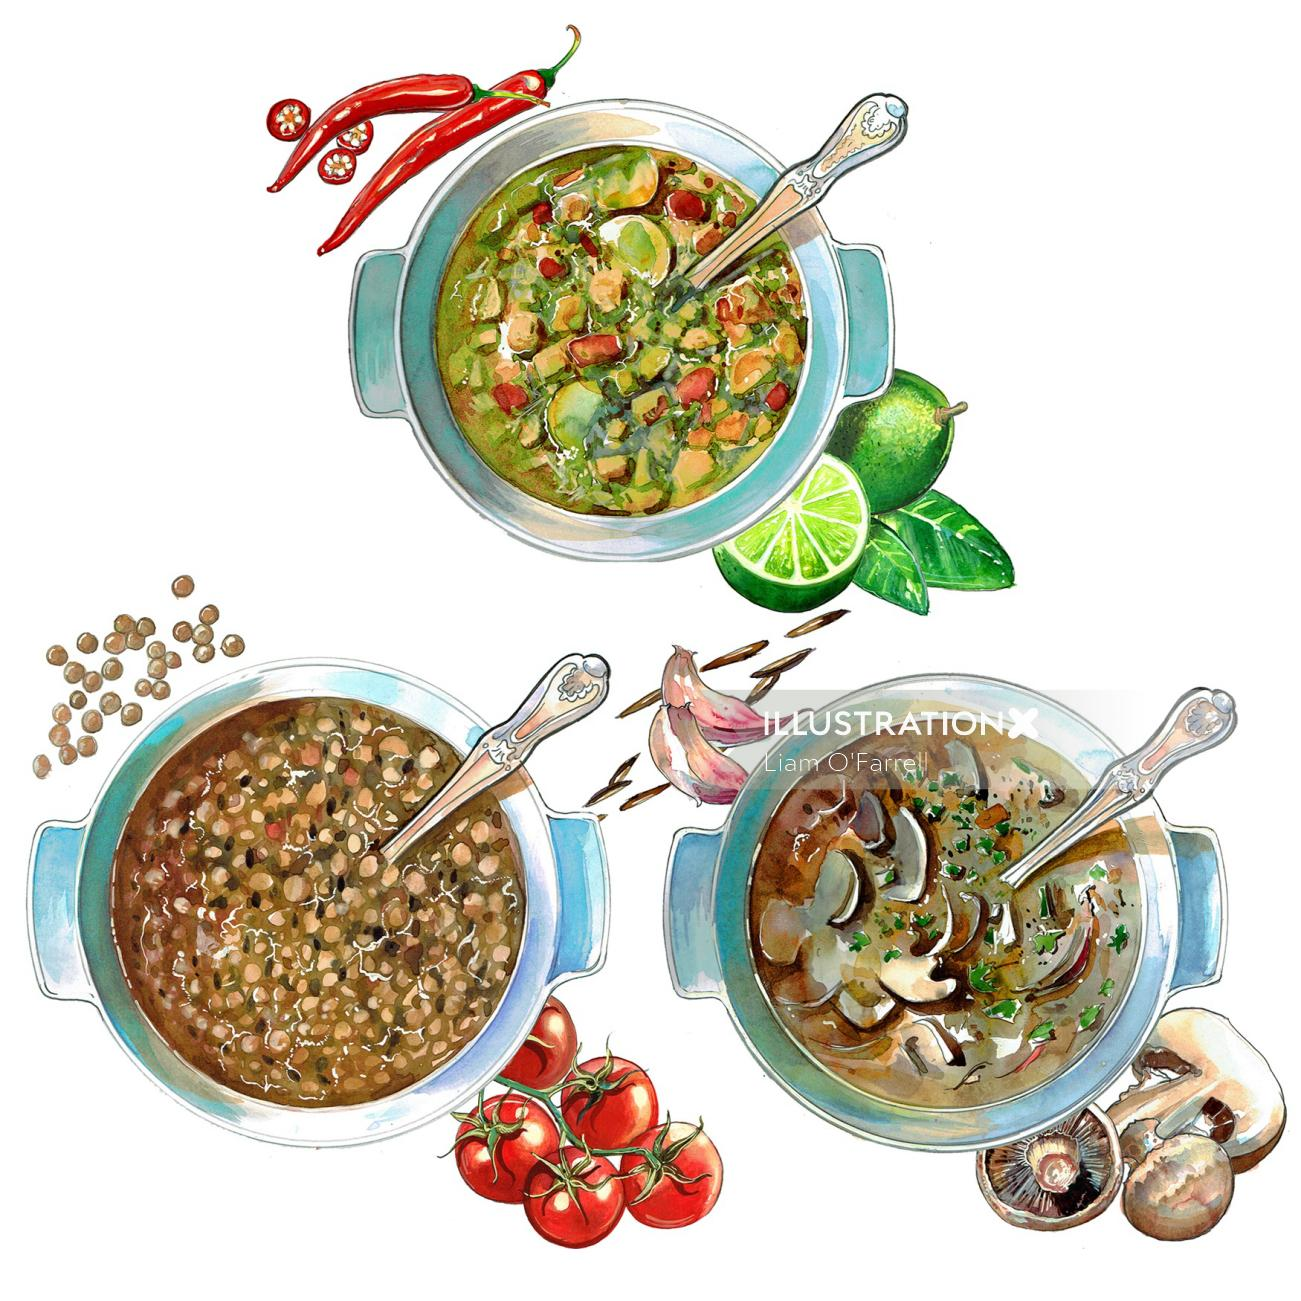 Soups for a series of high quality recipes